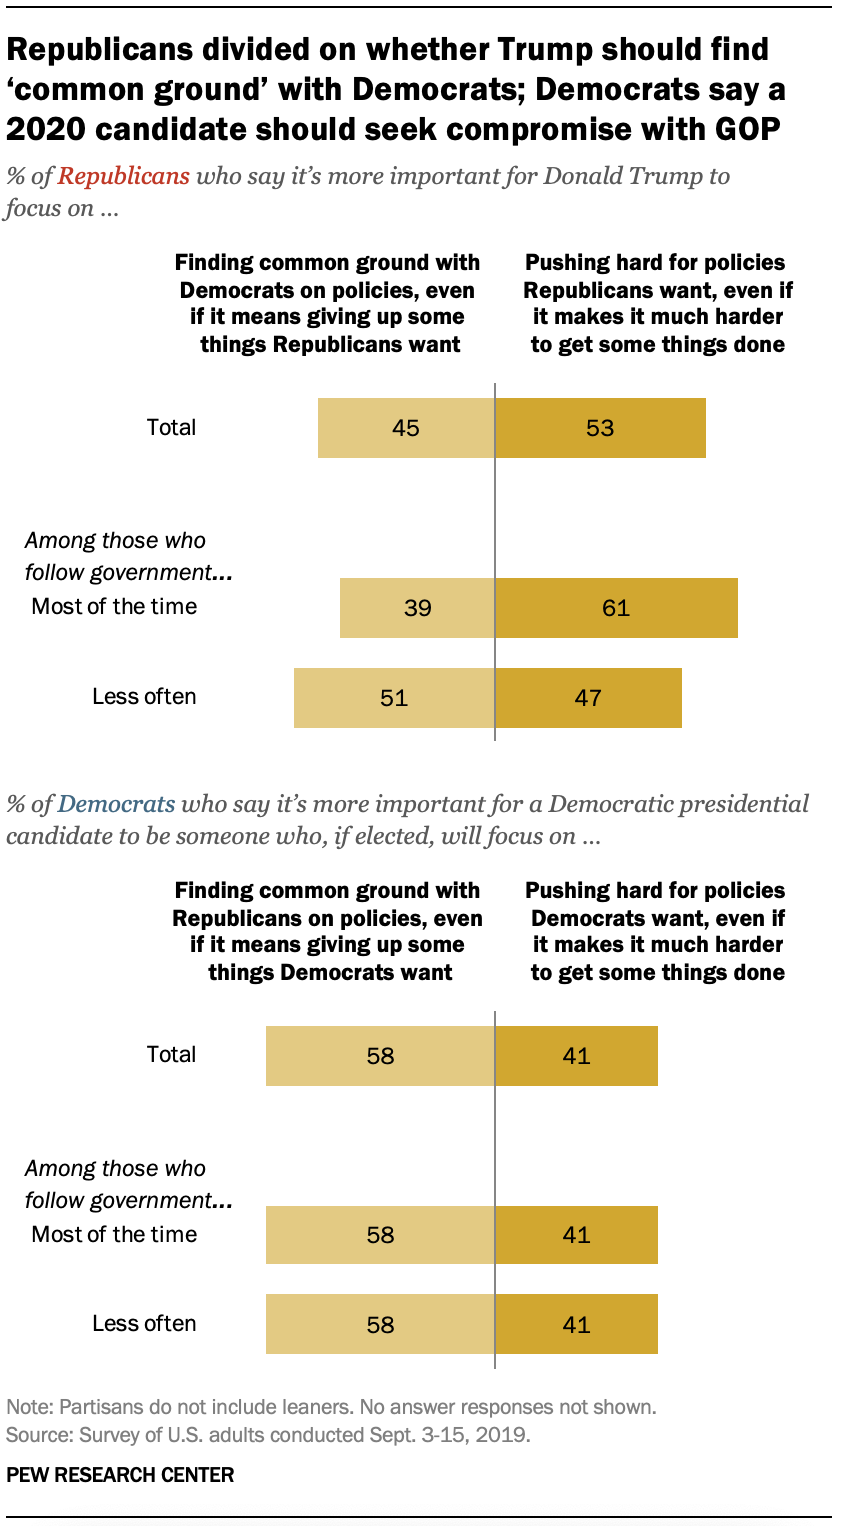 Republicans divided on whether Trump should find 'common ground' with Democrats; Democrats say a 2020 candidate should seek compromise with GOP